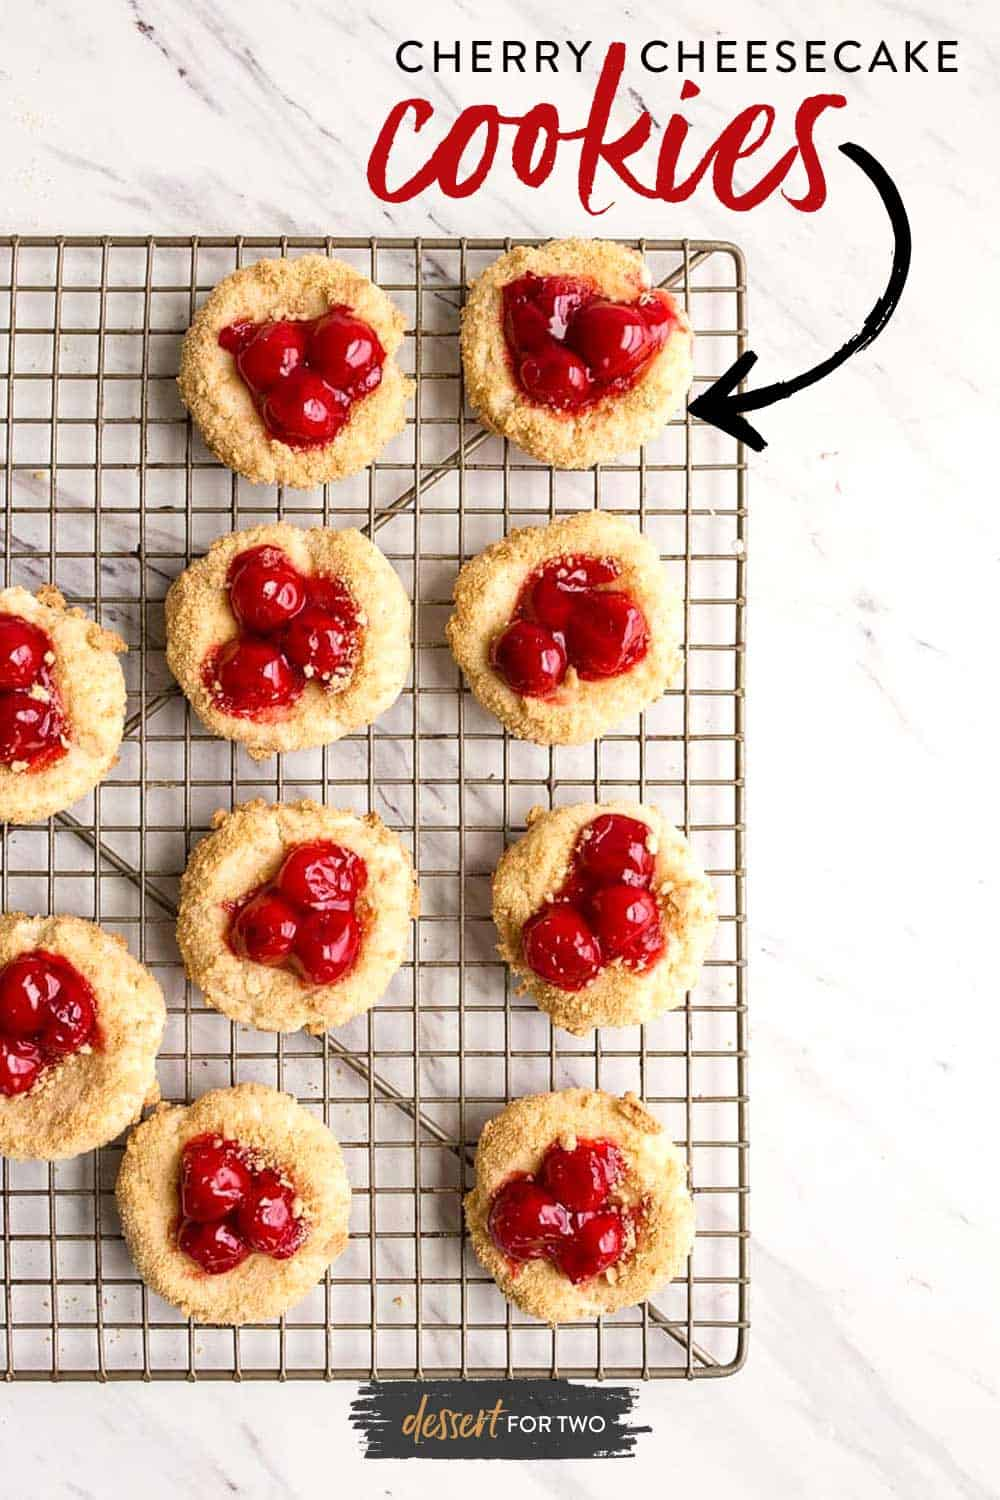 Cherry Cheesecake Cookies: cheesecake cookies rolled in graham cracker crumbs and topped with canned pie cherries. #cheesecake #cheesecakecookies #cookies #cherry #piecherries #cherries